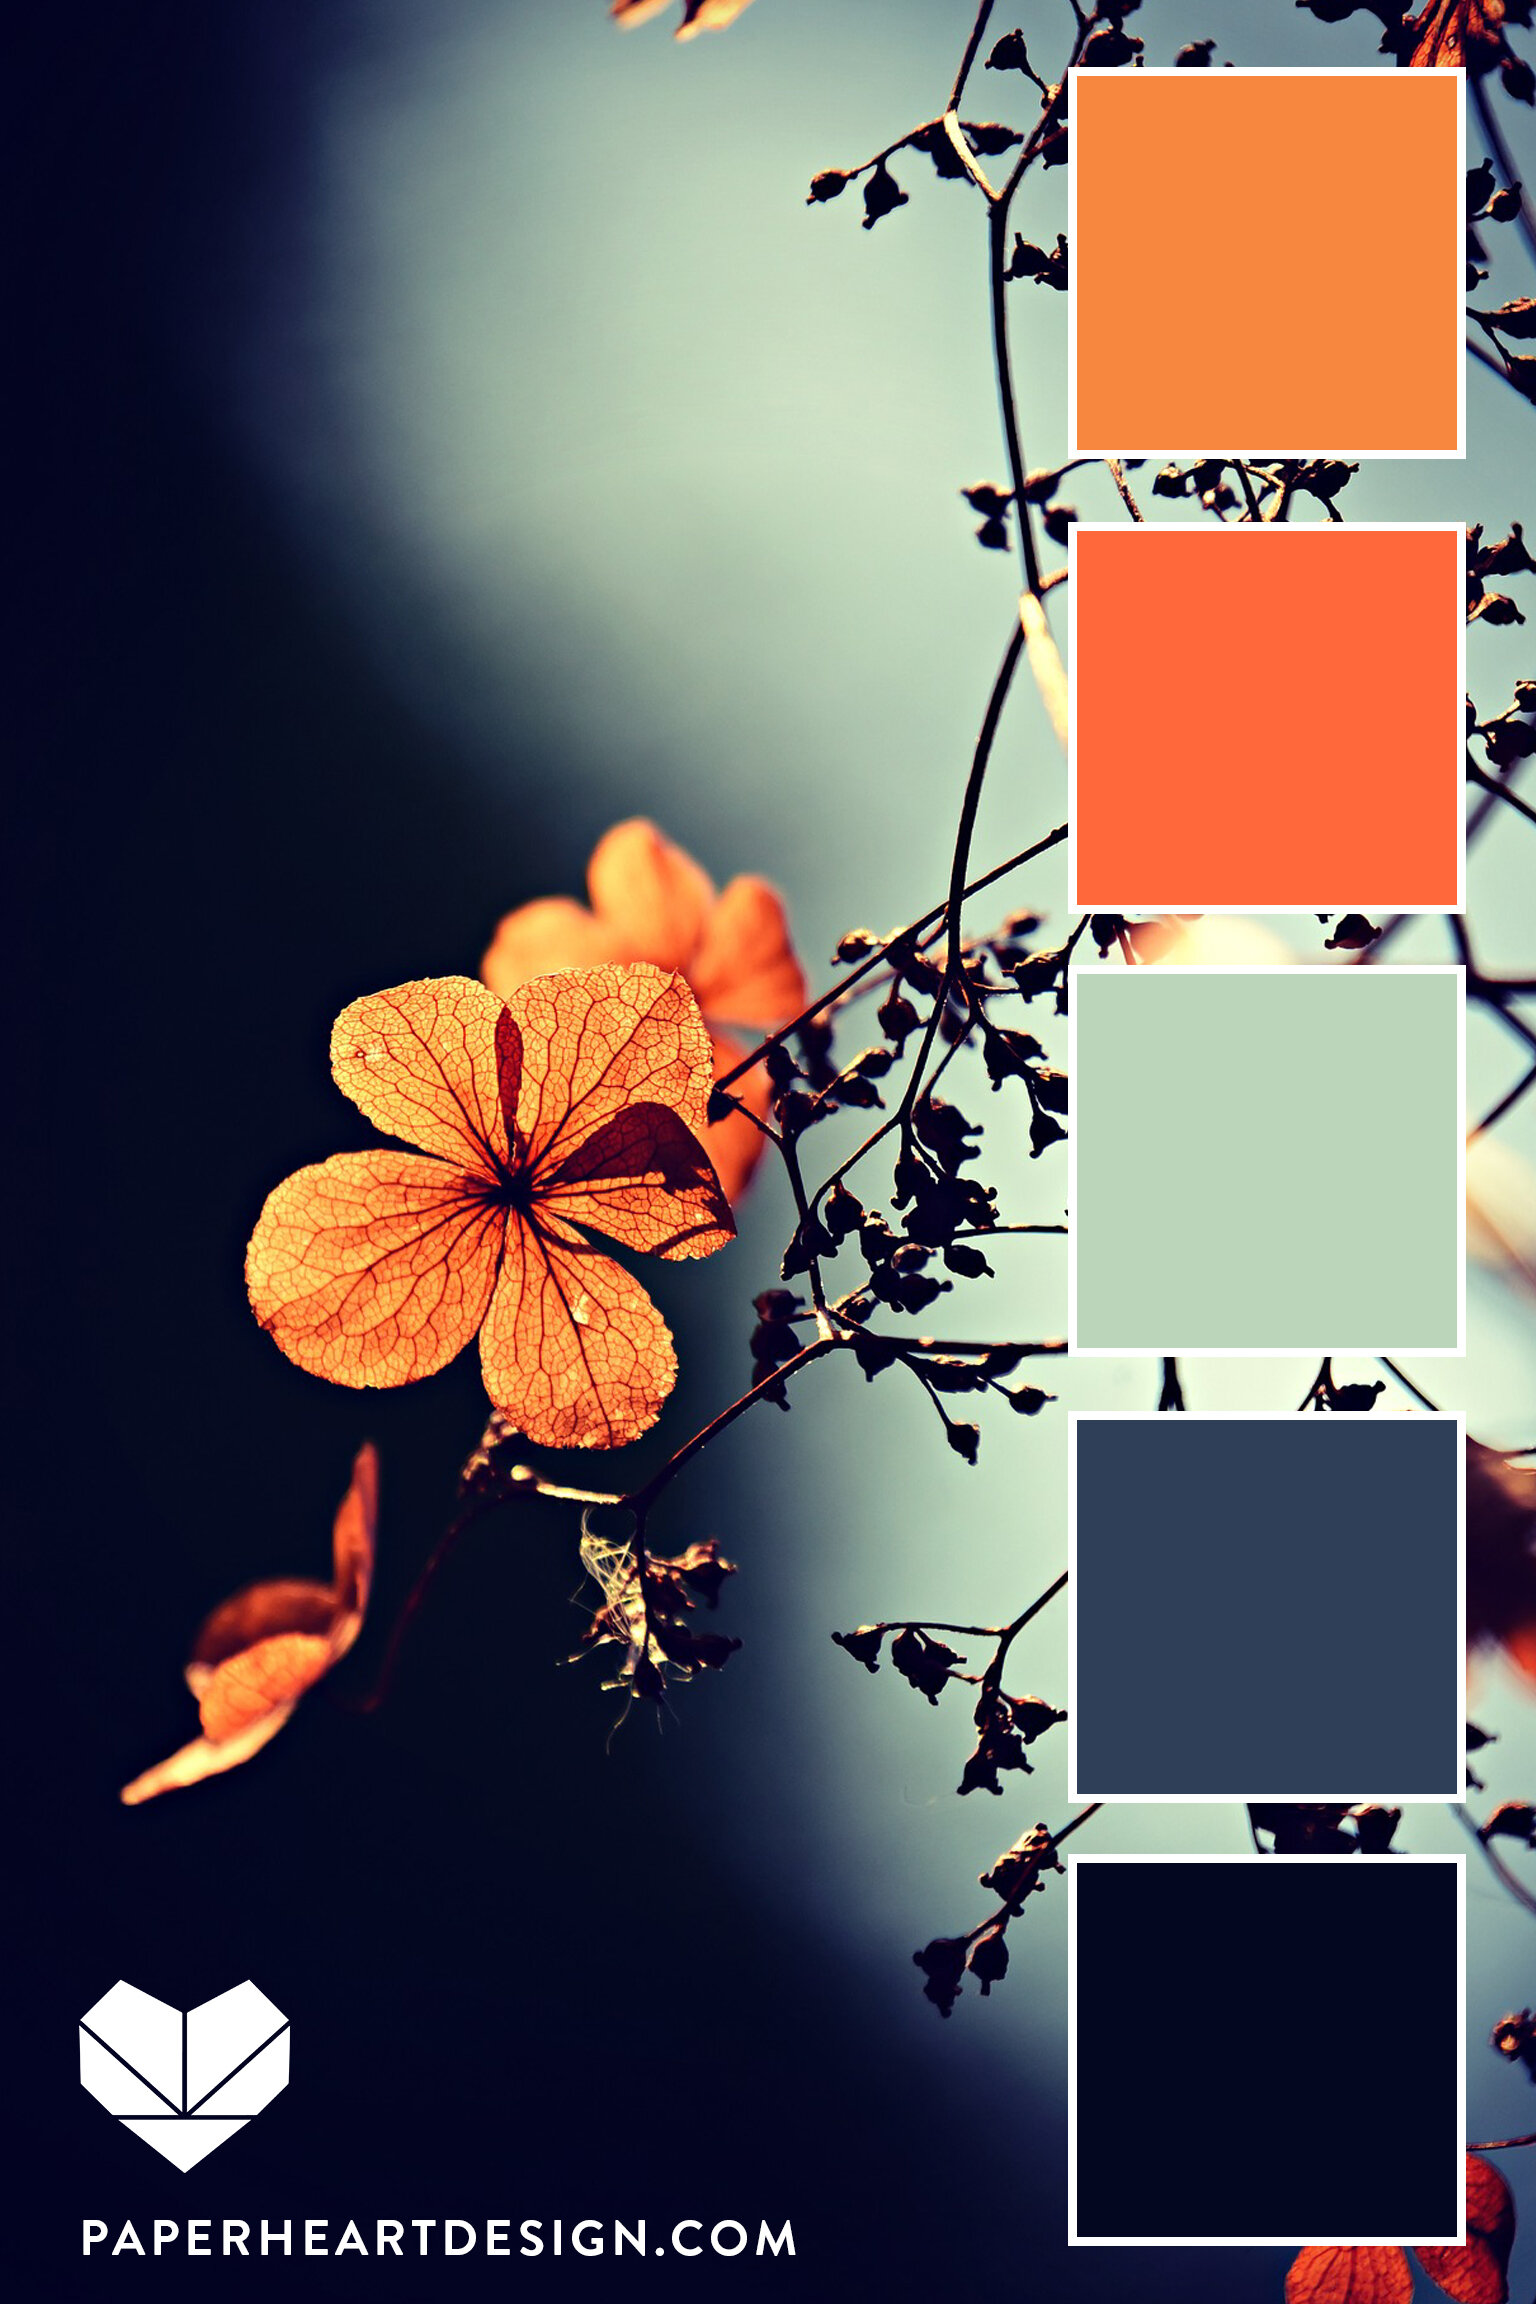 Coral, Orange, Mint, and Gray-Blue with Navy create a dramatic contrast.